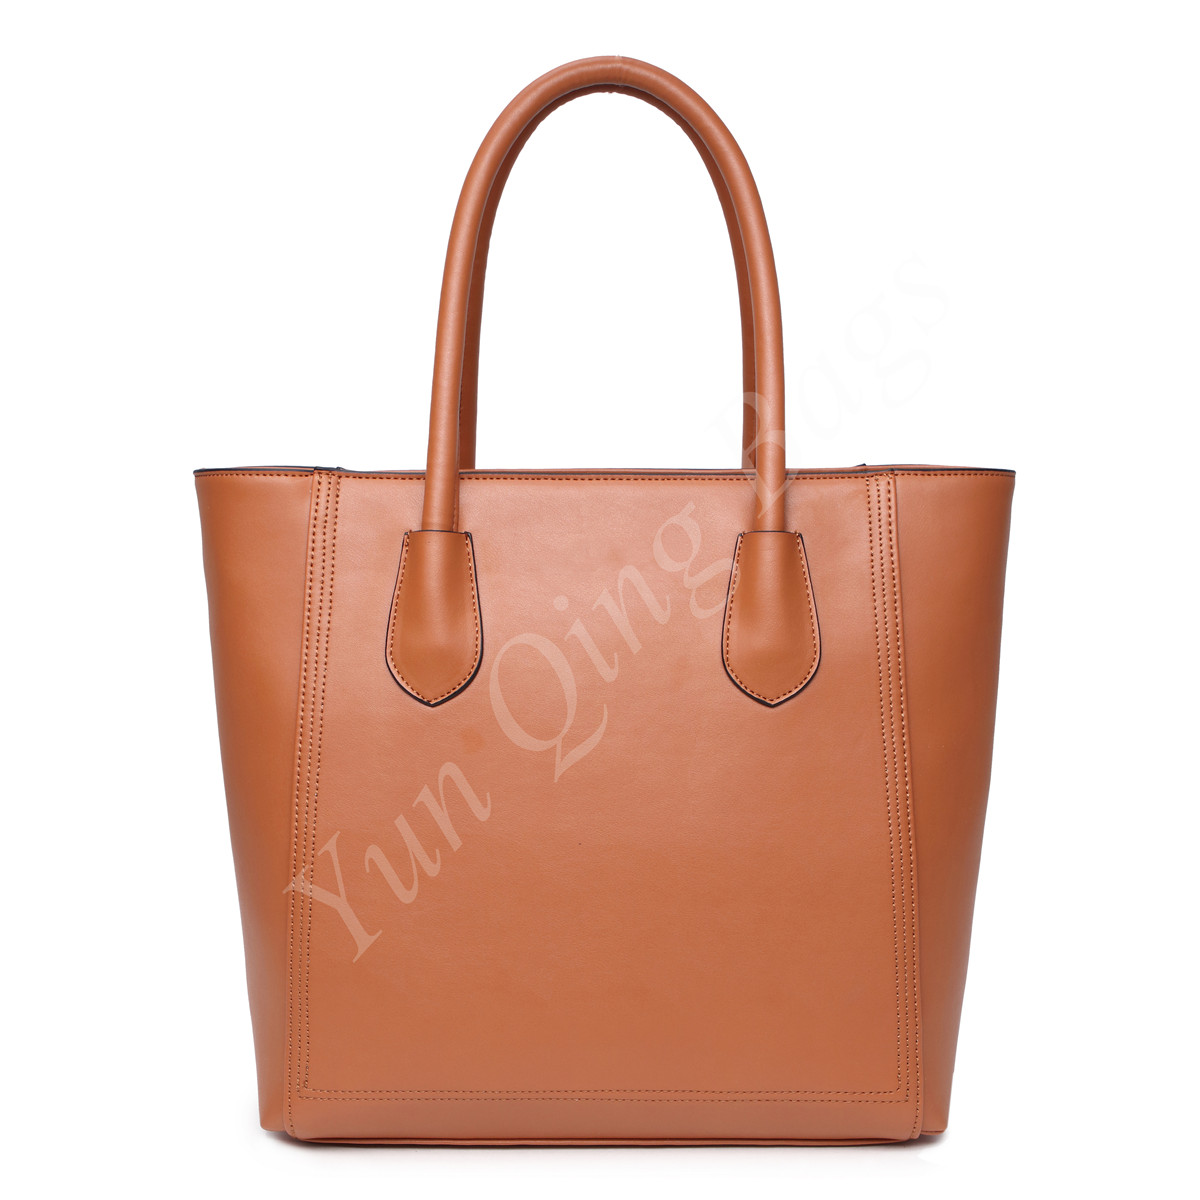 Classic Vertical Shopping Tote Handbag for Women